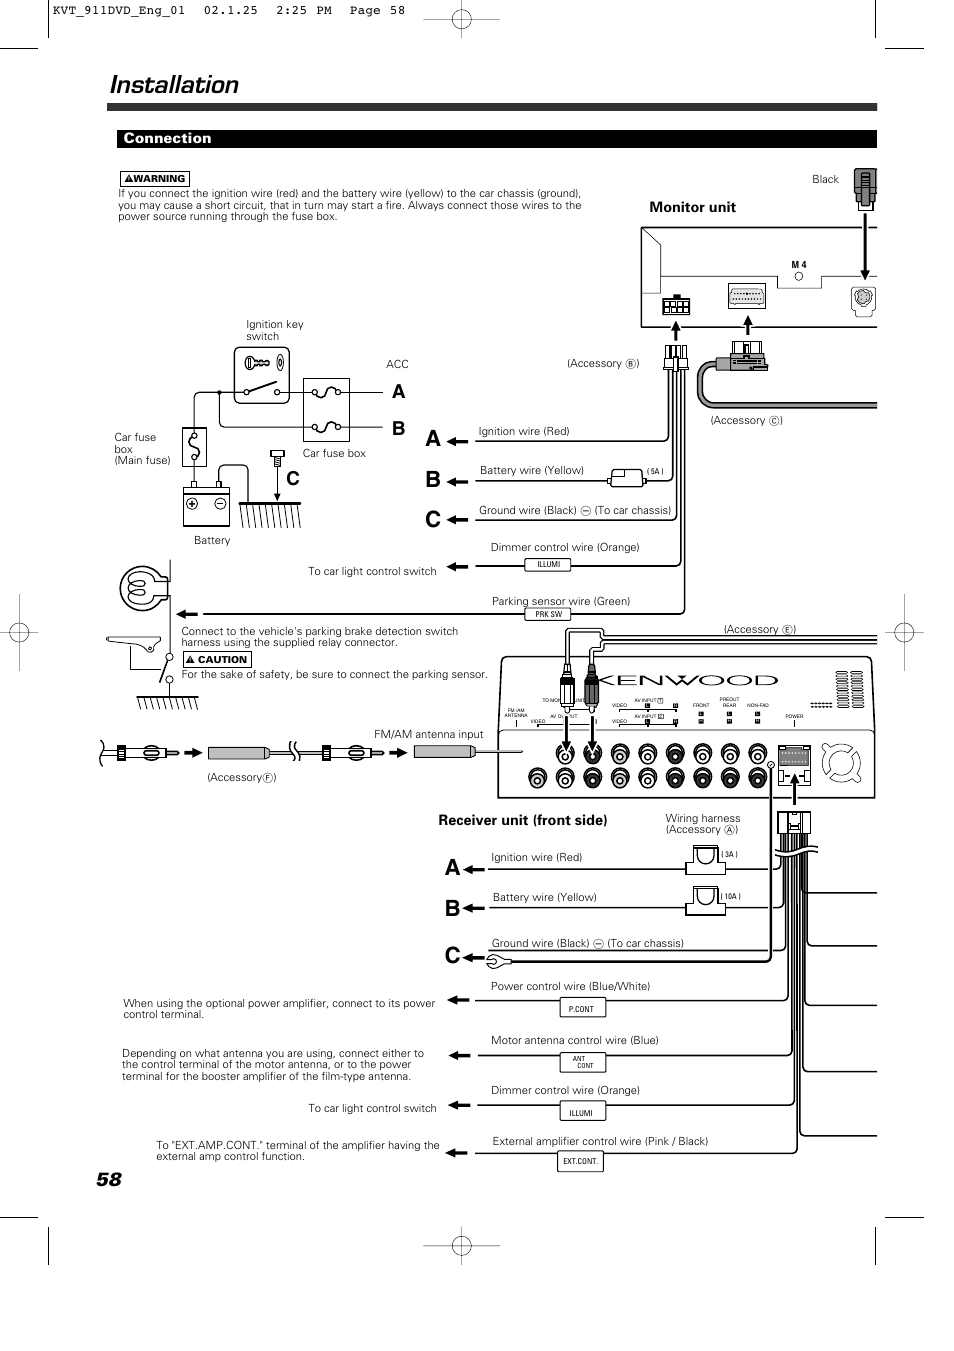 Kenwood Mobile Audio Wiring Harness Diagram Kenwood Stereo